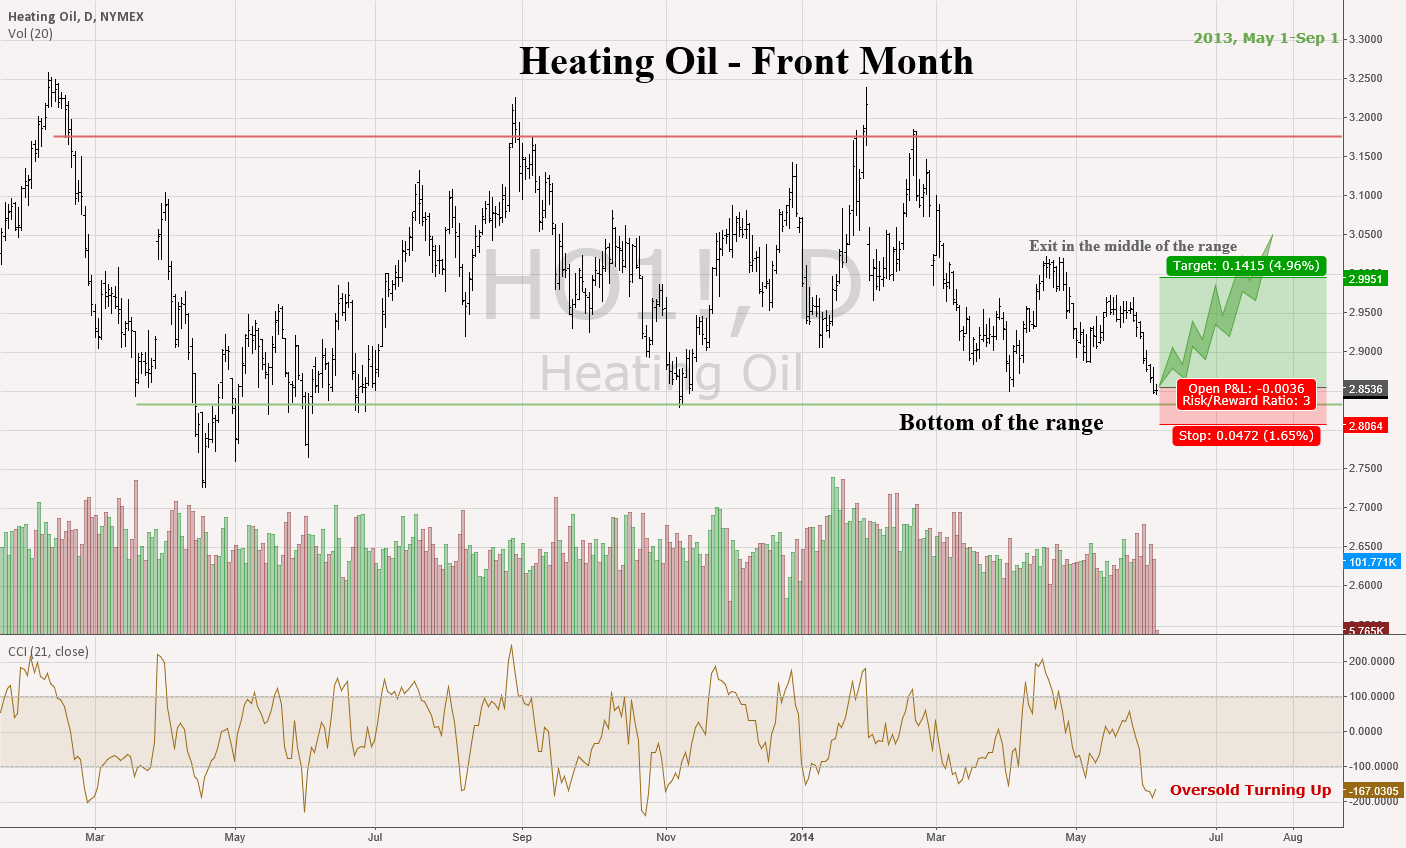 Heating Oil Front Month - Lock in Low Prices for next winter